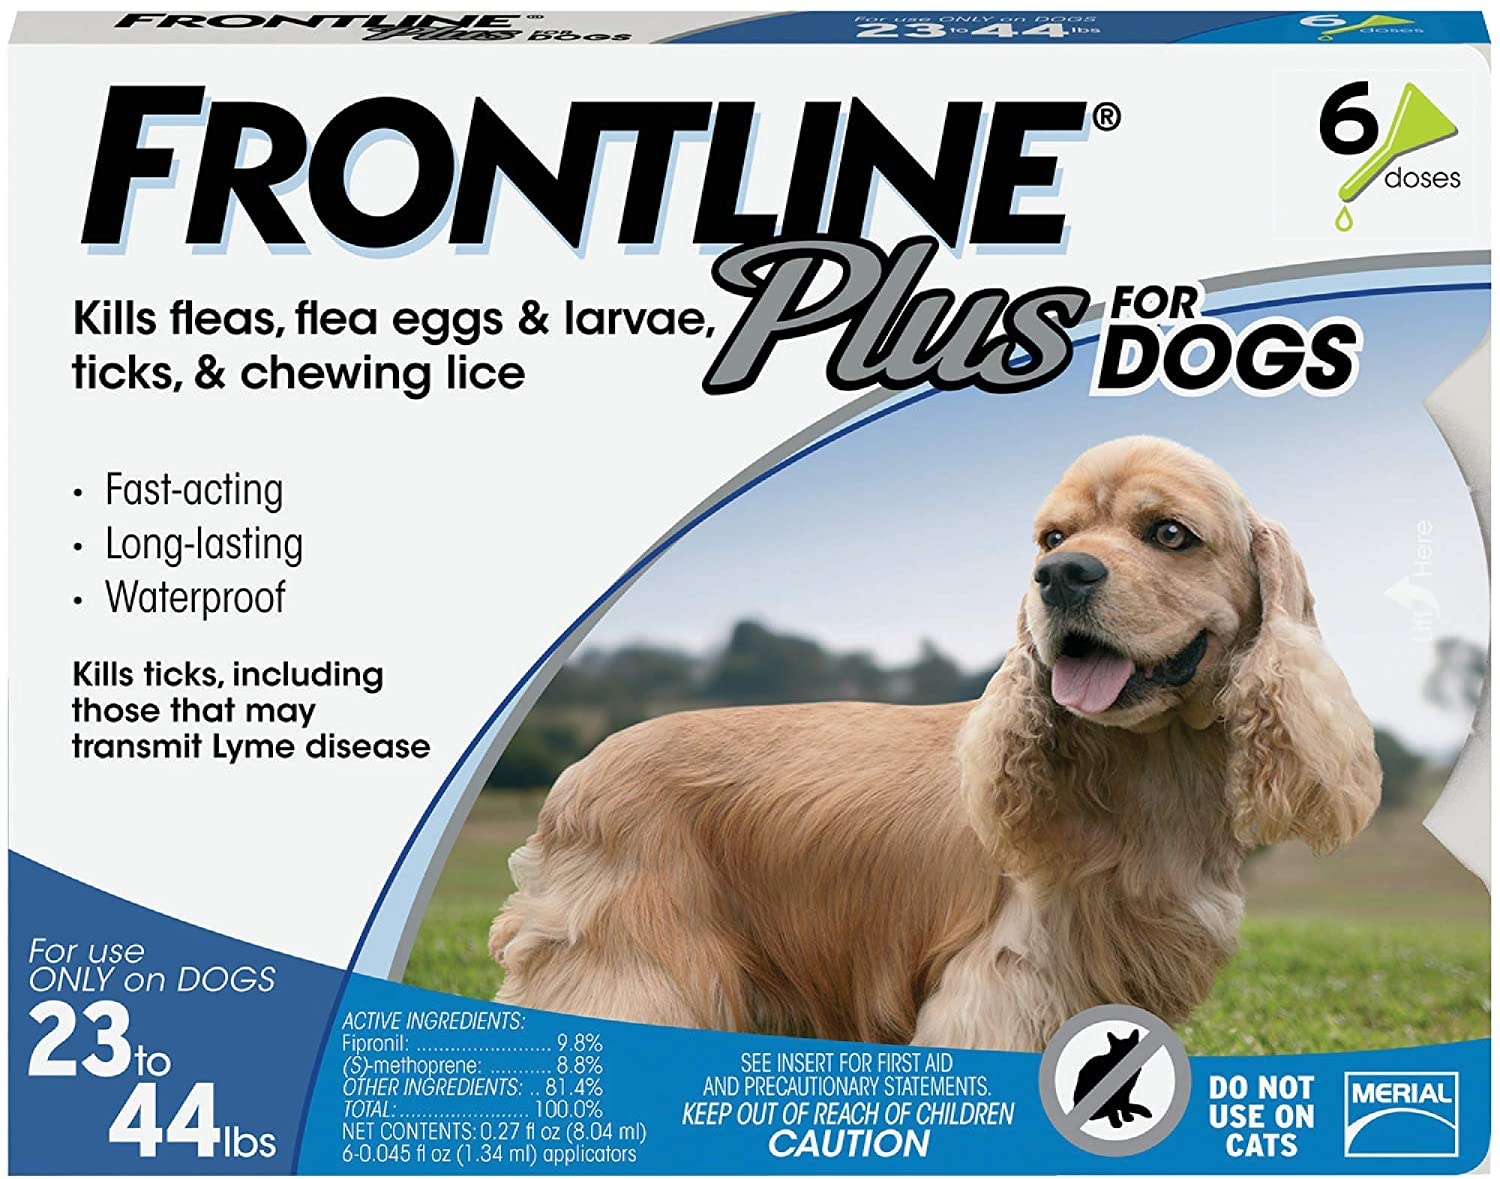 Frontline Plus Flea, Tick and Lice Control for Dogs 23 to 44 lbs, 6 doses